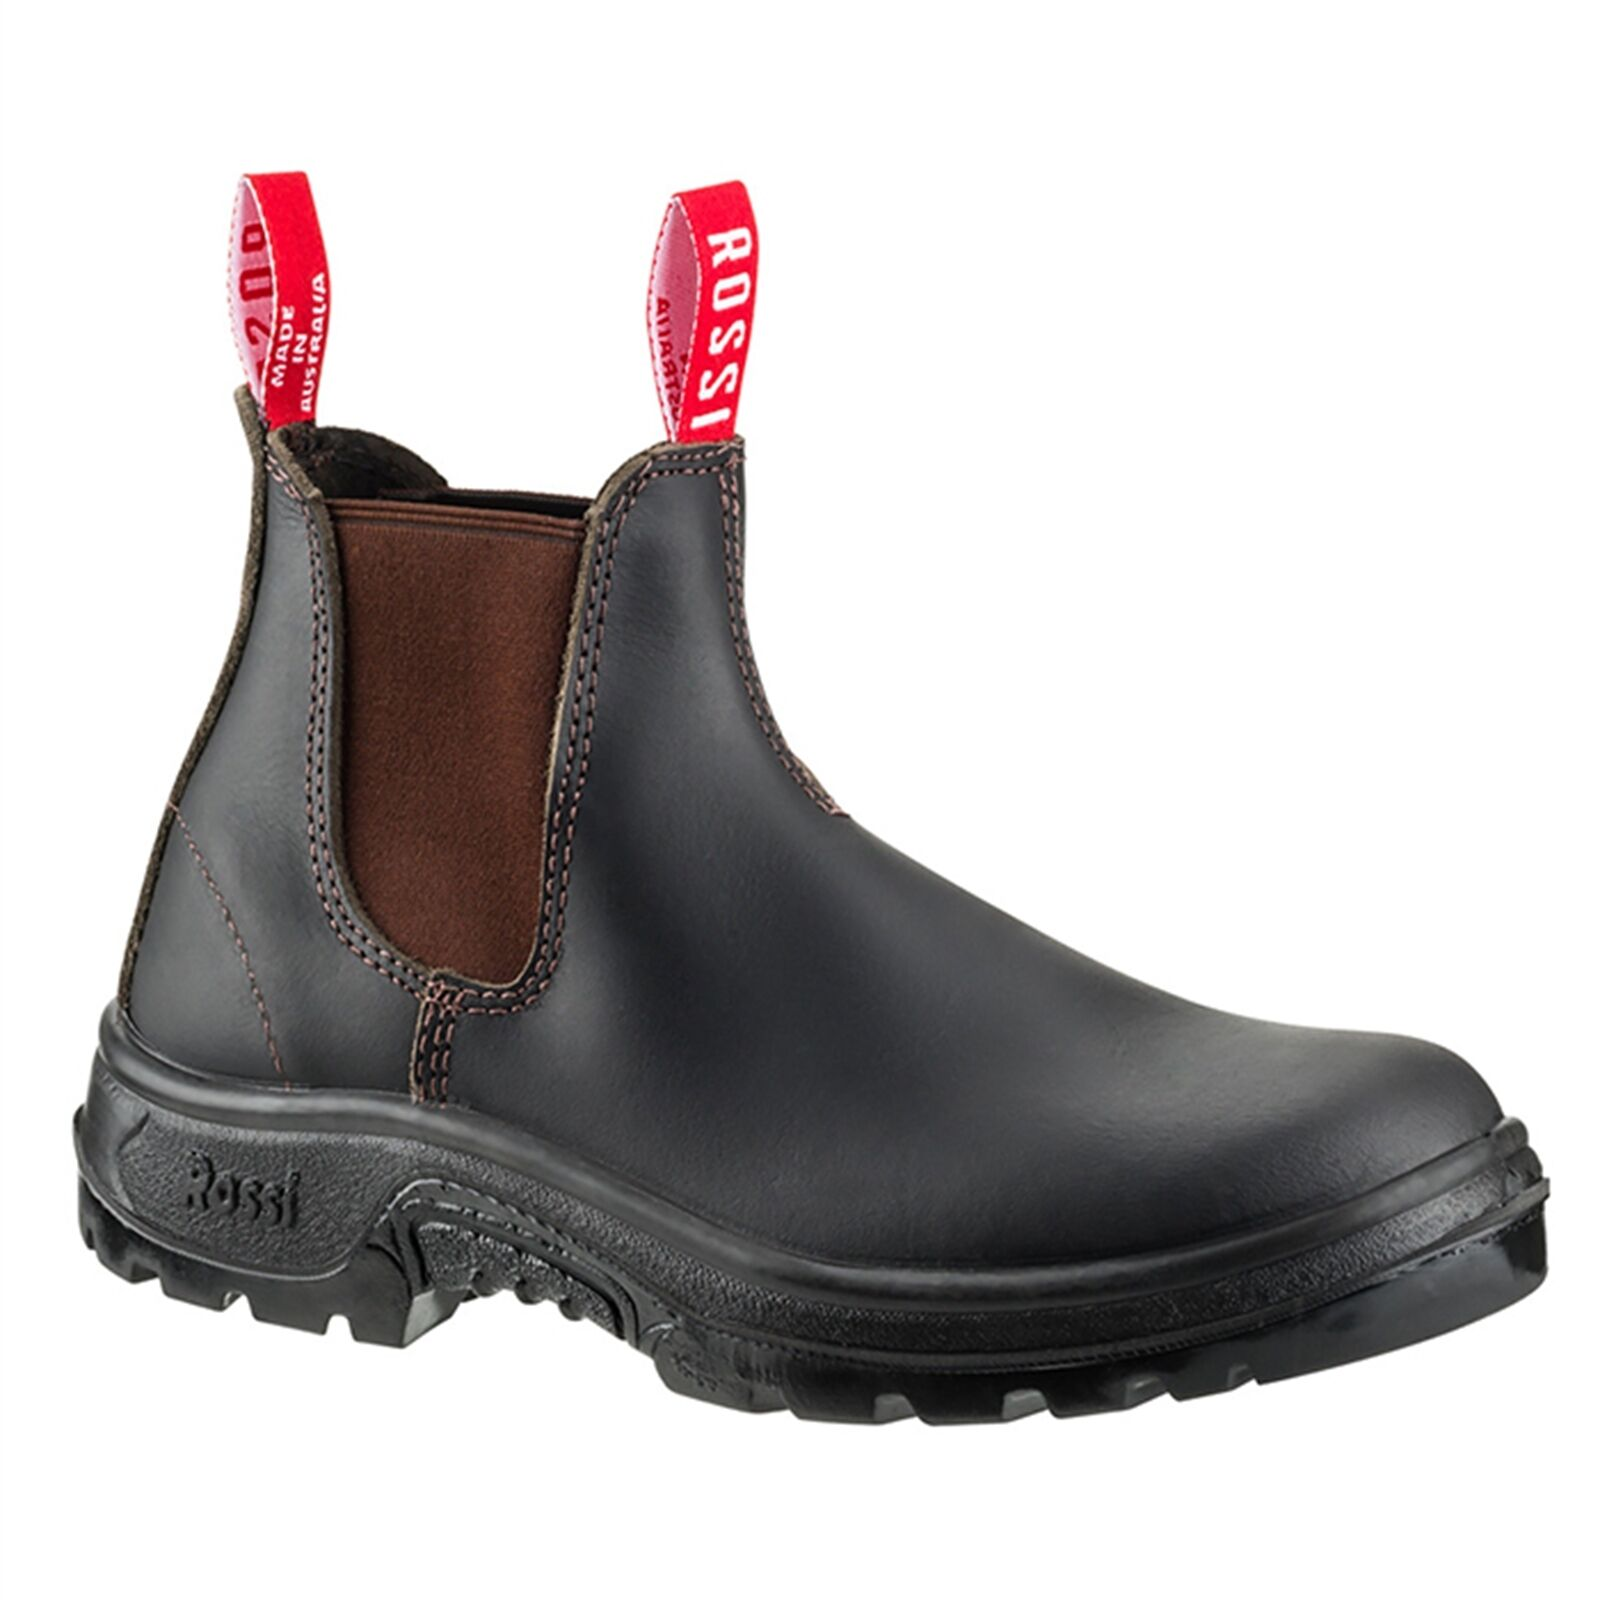 Rossi Stivali ELASTIC SIDED Size KIP WORK BOOTS Pelle Upper *A T Made- Size SIDED 7,8 Or 9 da0db7